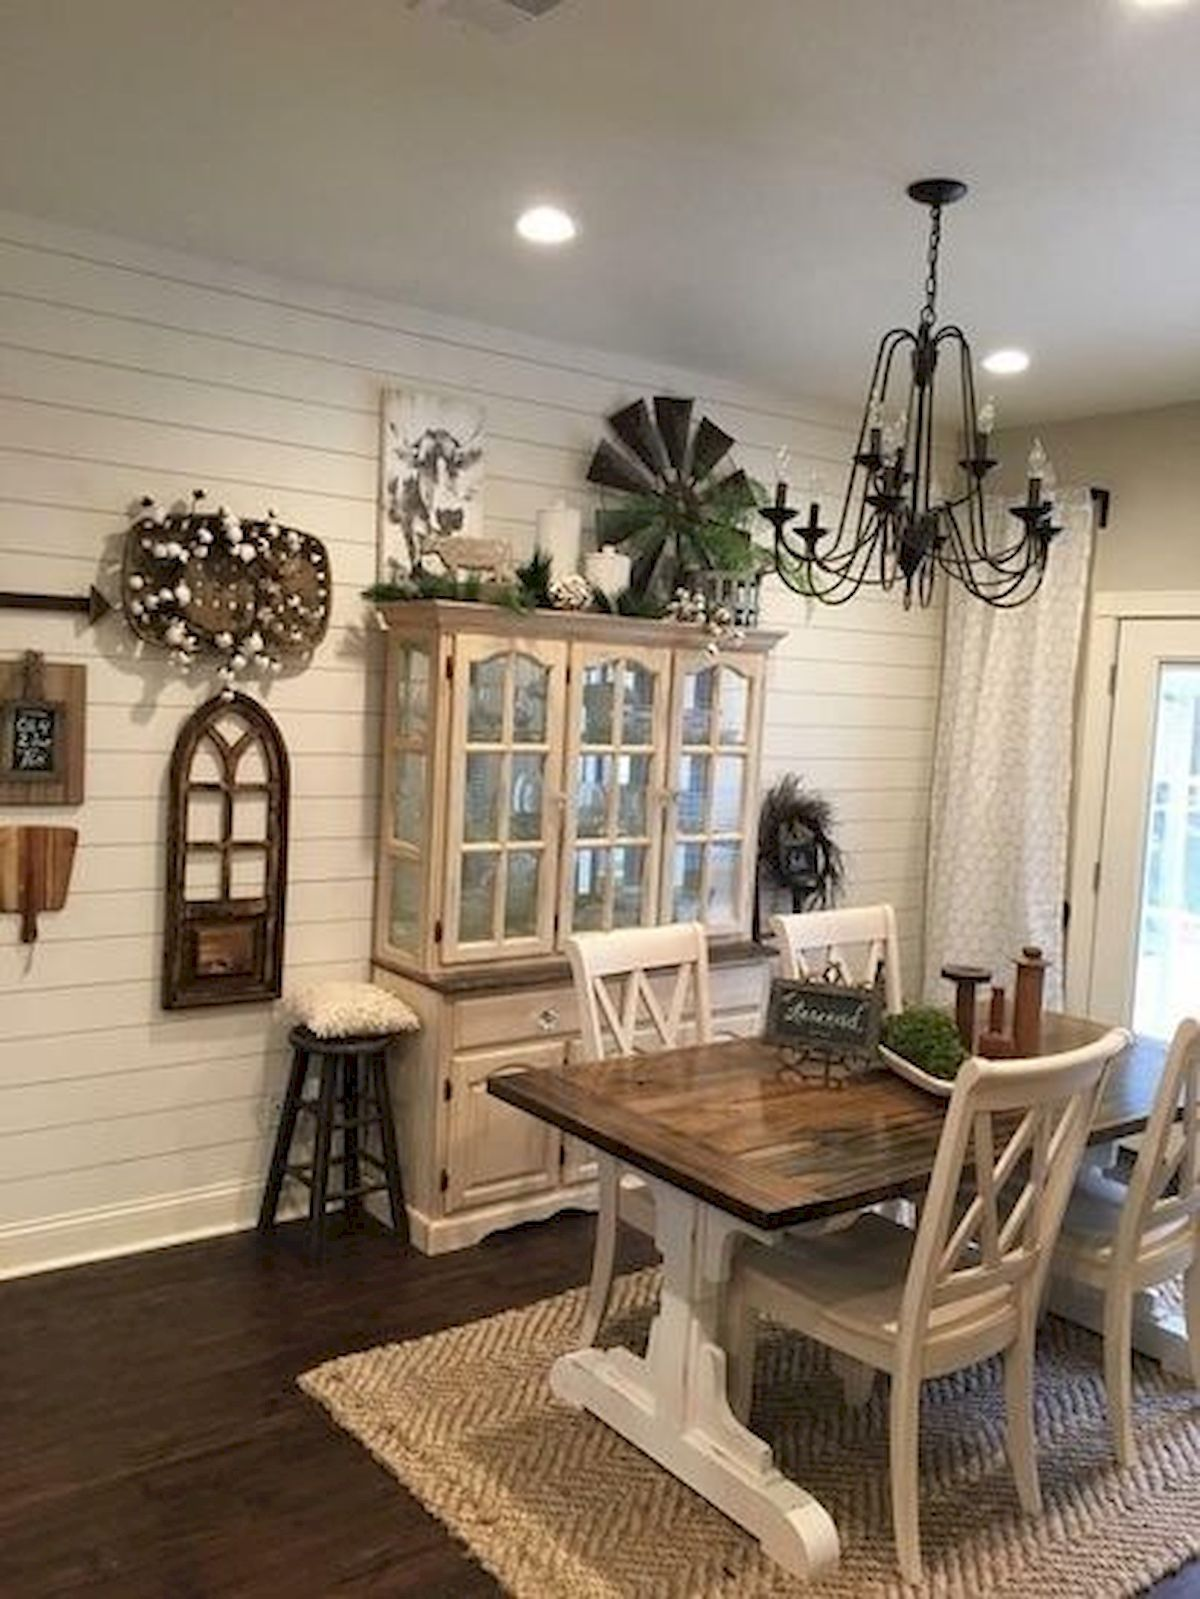 30 Best Farmhouse Table Dining Room Decor Ideas in 2020